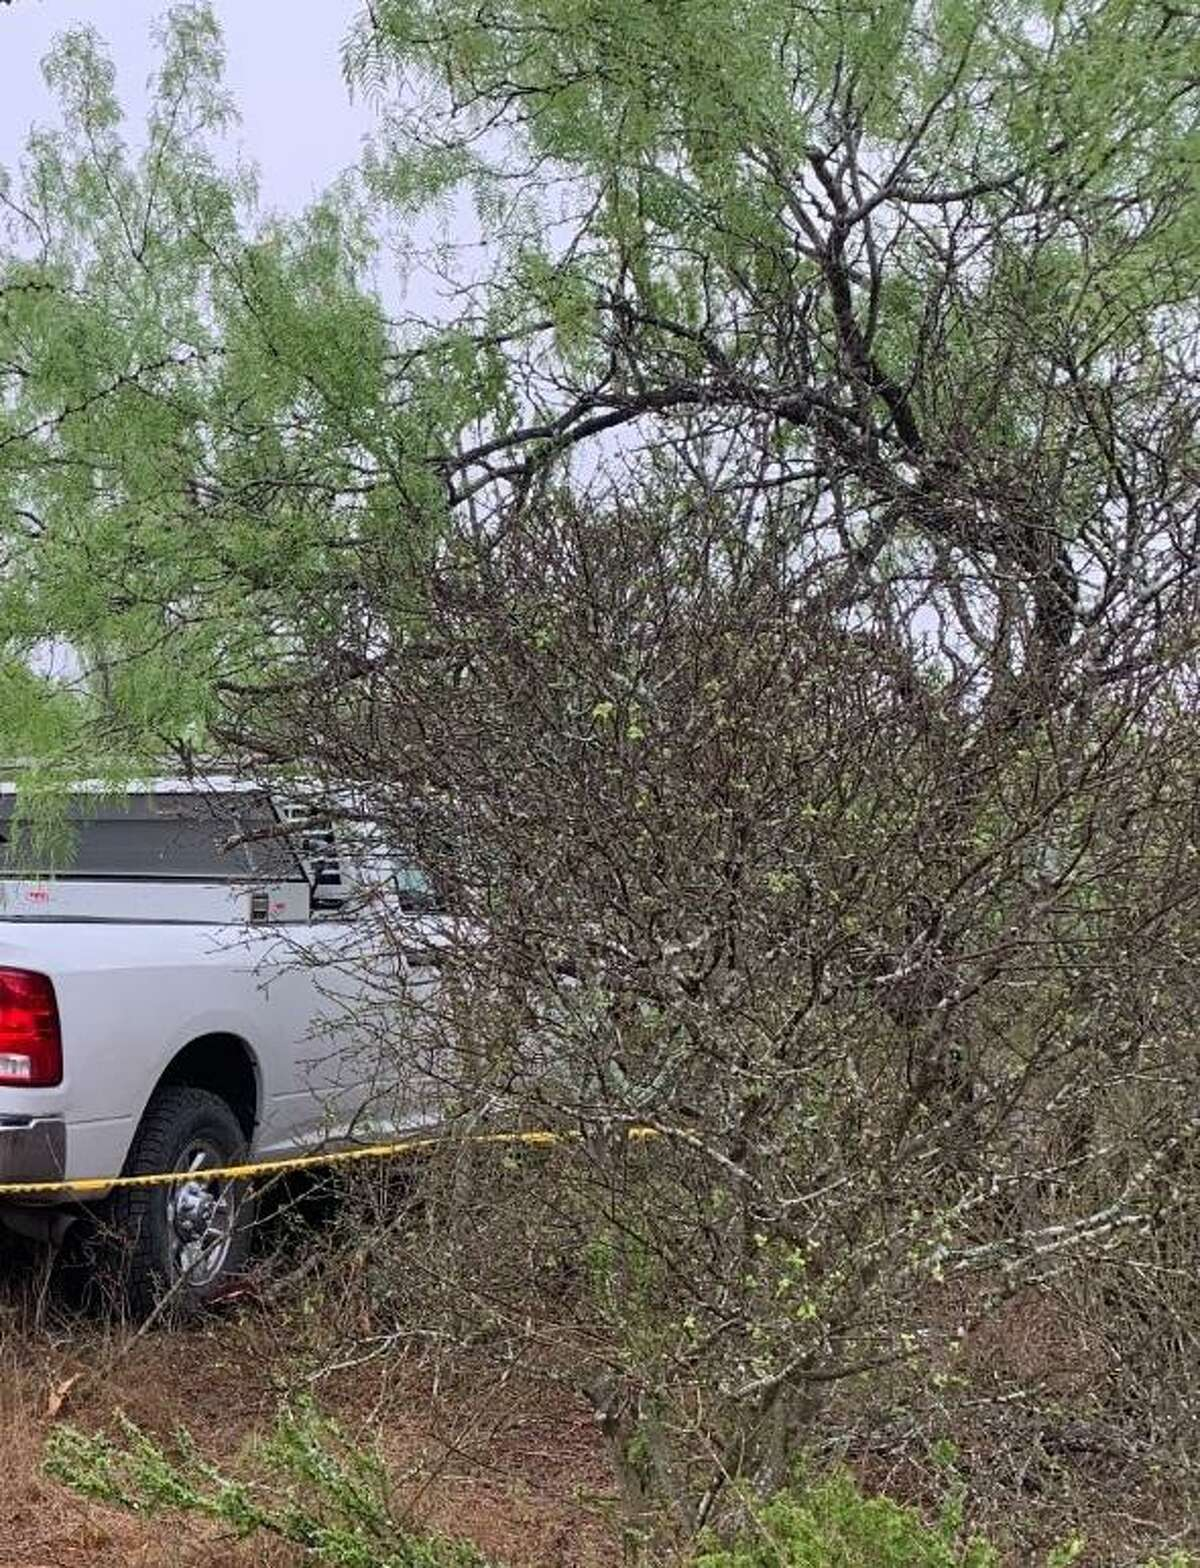 This white Dodge Ram 2500 was involved in a human smuggling attempt where a citizen of Mexico died on April 22 in northern Webb County. Authorities said the vehicle was reported stolen.